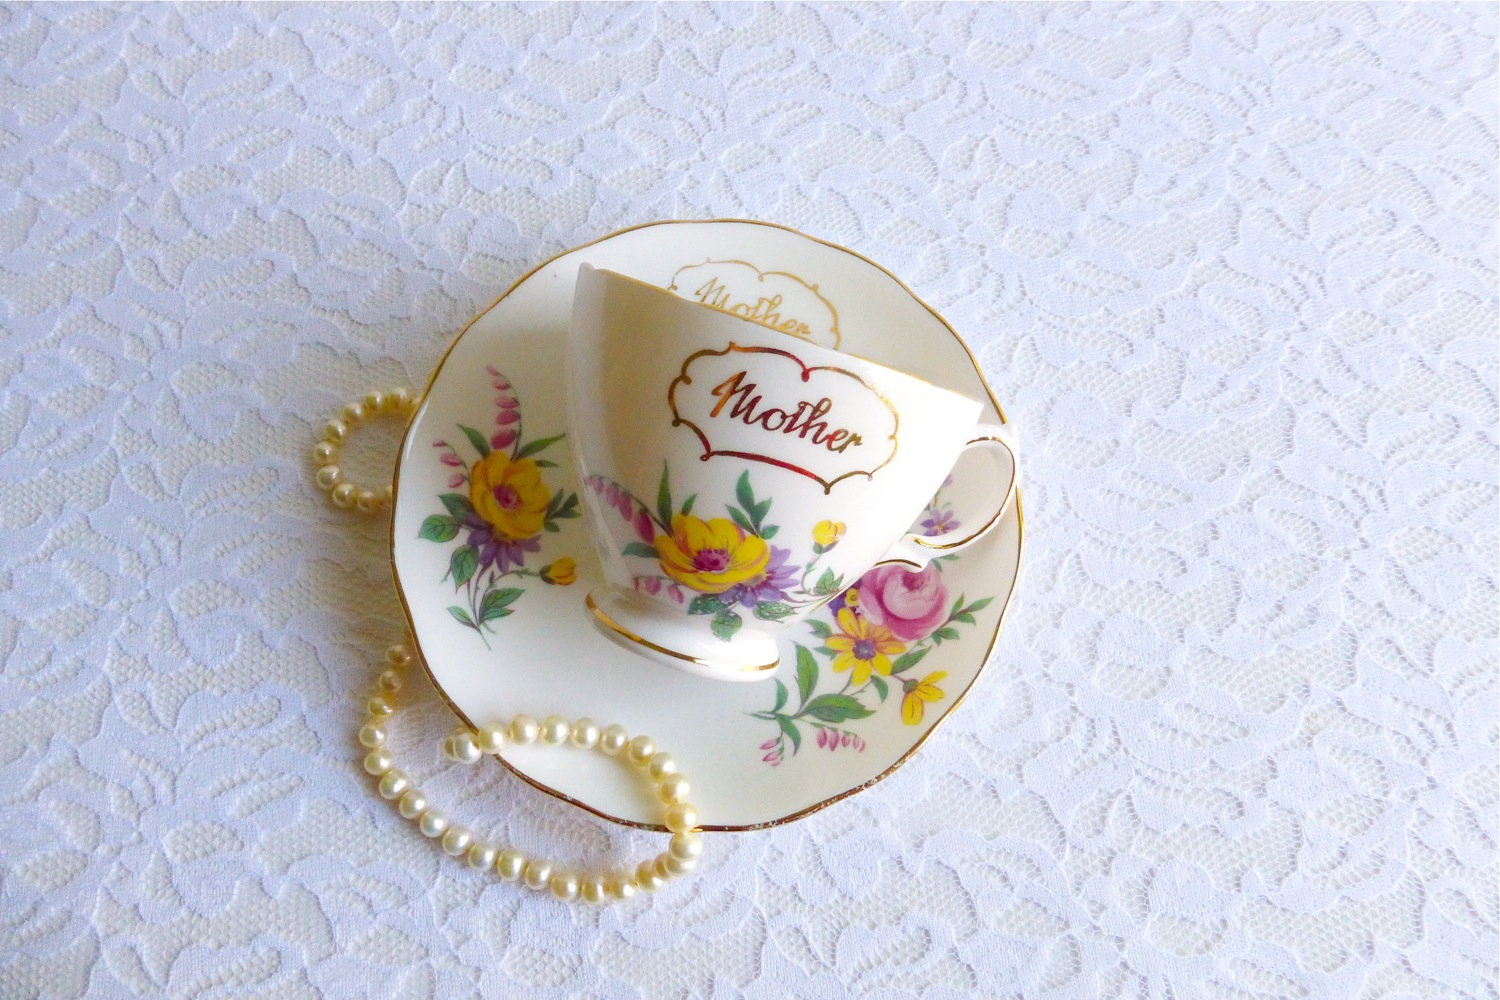 flatten the curve, flatten the coronavirus curve, flatten the COVID-19 curve, flatten the coronavirus COVID-19 pandemic curve, COVID-19 2020, coronavirus pandemic 2020, Vintage Tea Treasures on Etsy, Vintage Tea Treasures Mother's Day, Vintage Royal Vale Mother Bone China Teacup and Saucer set, Mother's Day gift, Etsy Mother's Day free shipping, shop vintage tea ware Vintage Tea Treasures Etsy